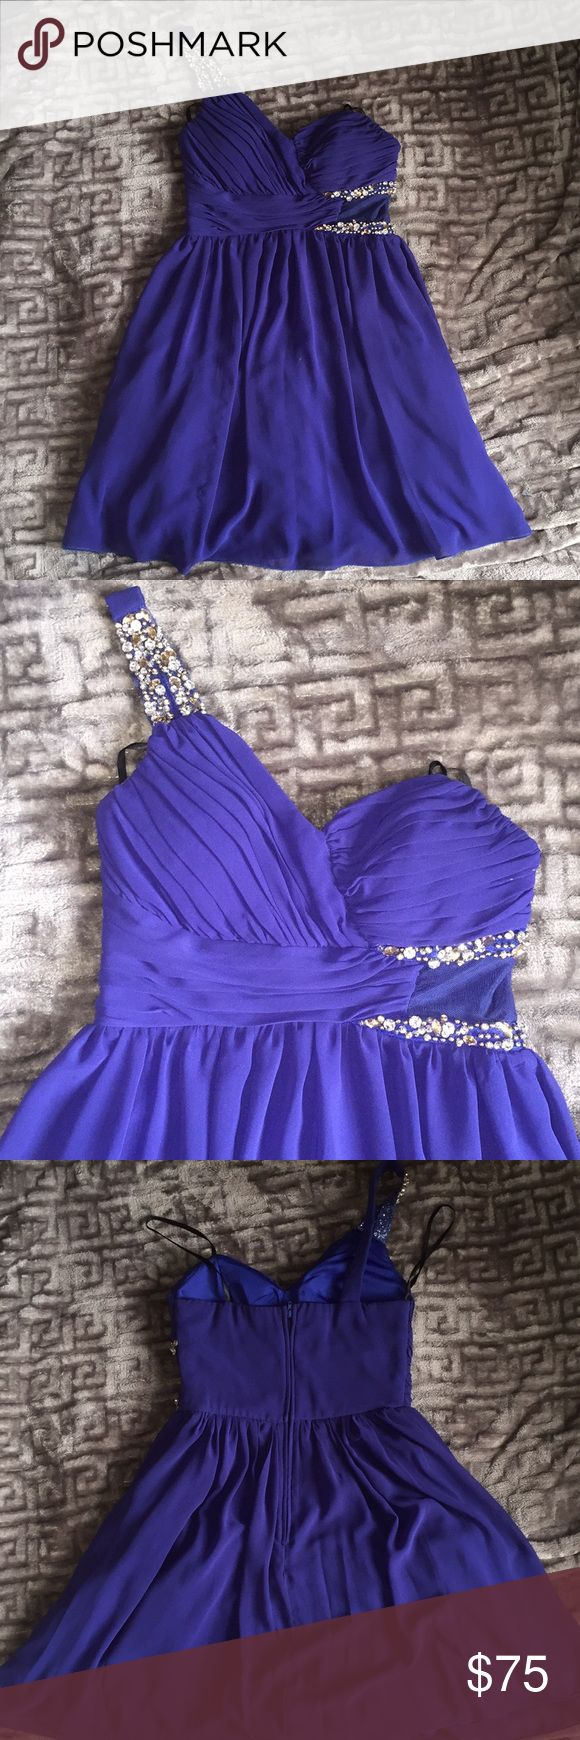 Royal blue one strap dress Royal blue one strap dress with all original gems in tact. One sheer side panel between beading. Slip and padded bra cups sewn into dress. Worn once, bag kept in closet. Good for formal ocassions, bridesmaid, snowflake, prom, etc. jcpenney Dresses Prom